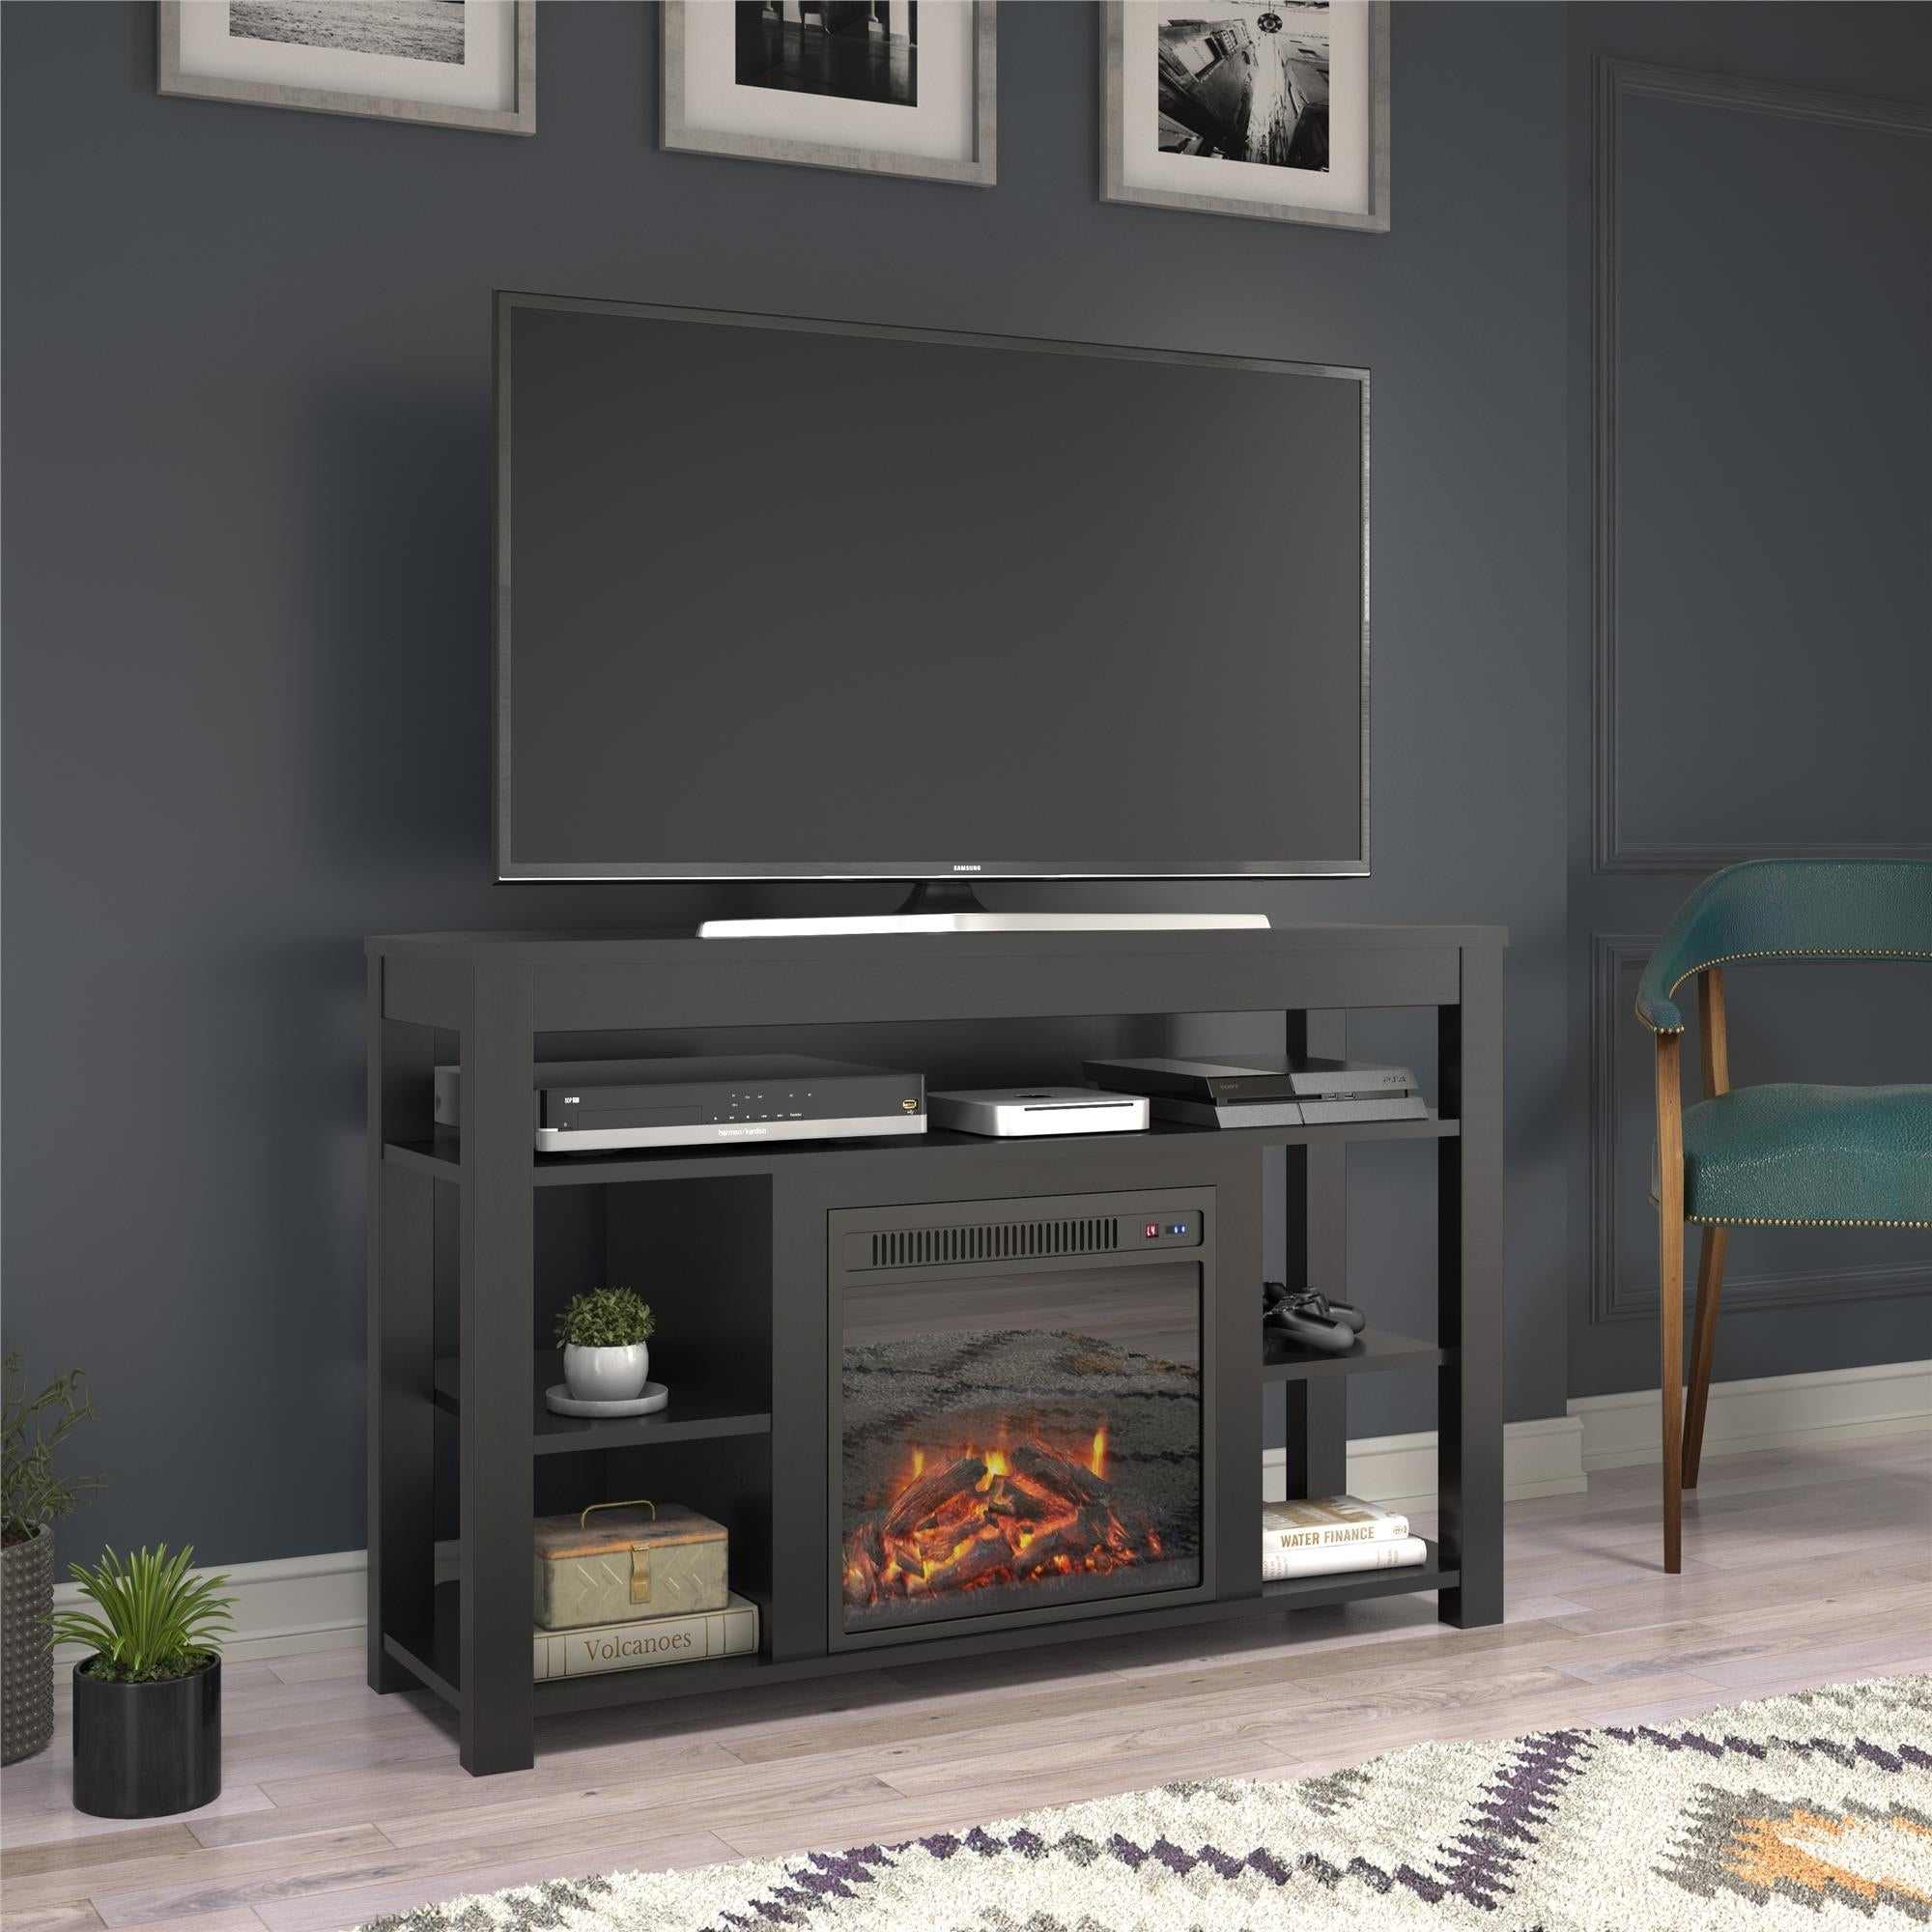 Avenue Greene Jack Corner Fireplace Tv Stand For Tvs Up To 55 Inches